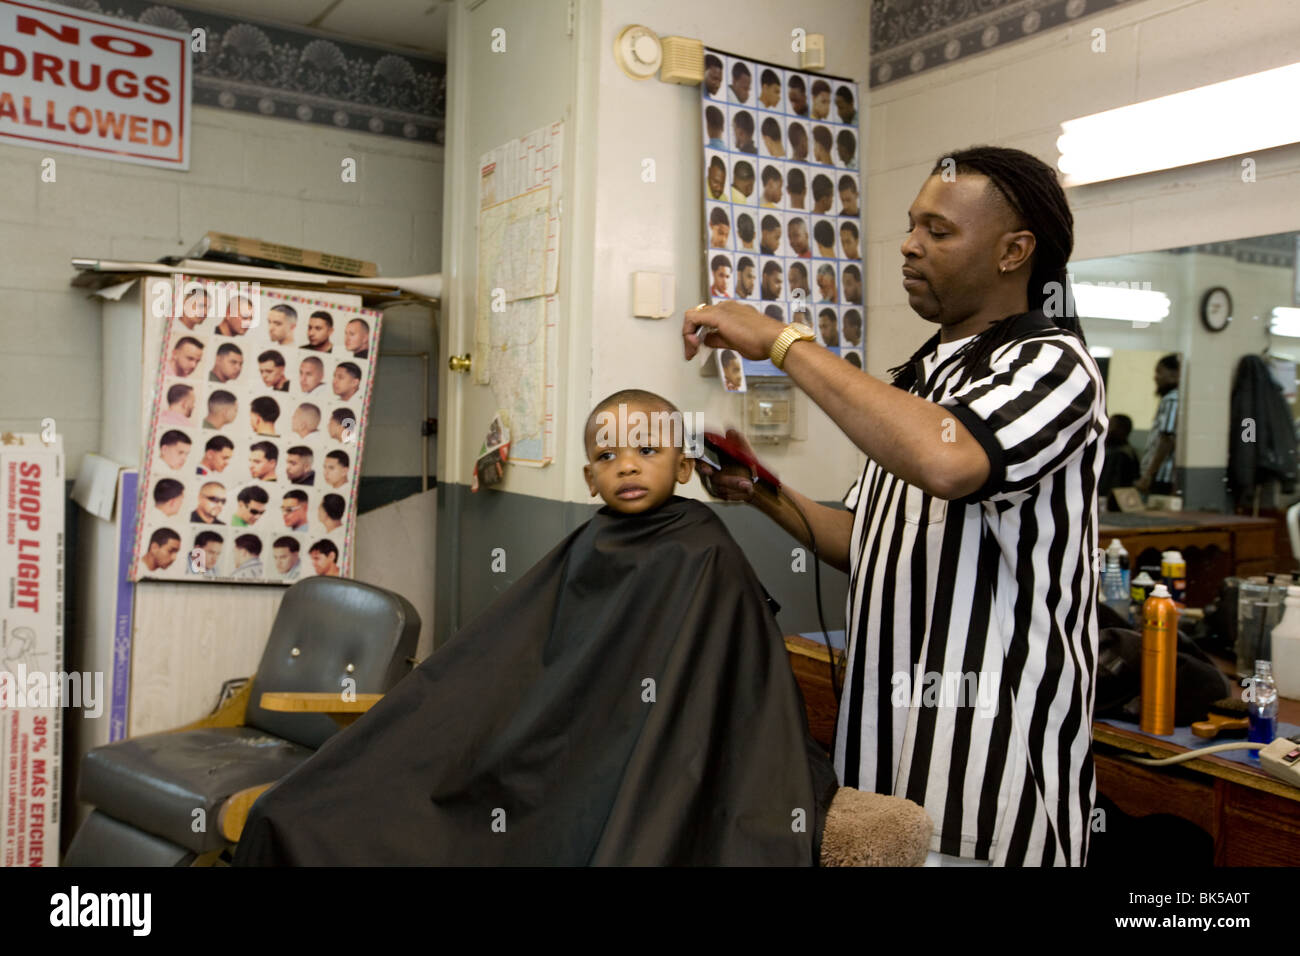 Child getting haircut in Clarksdale, Mississippi delta barber shop Stock Photo